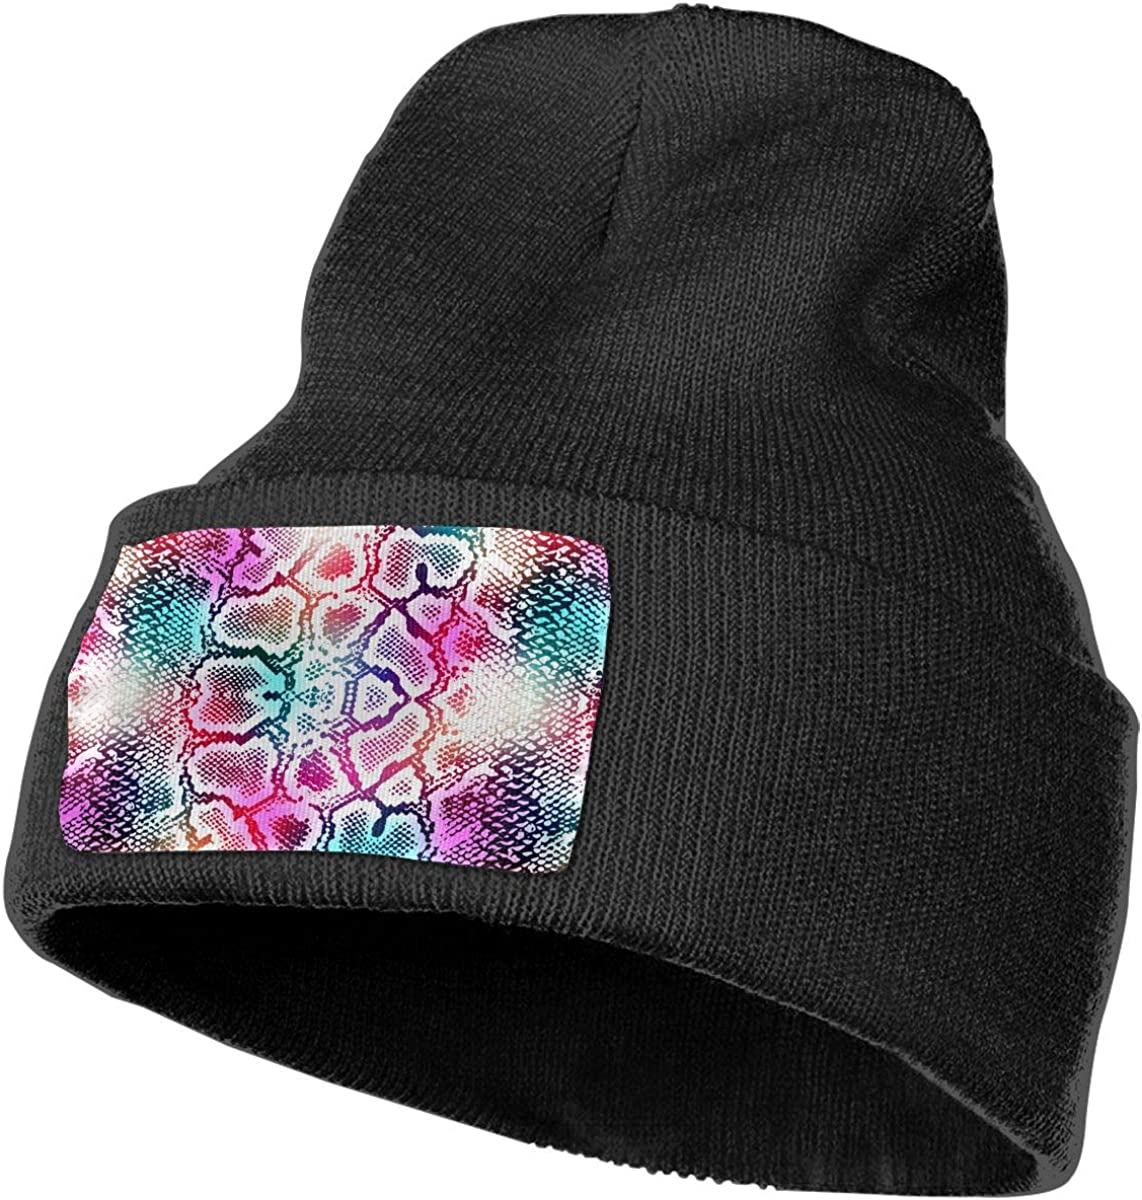 Colorful Snake Skin Texture Unisex Fashion Knitted Hat Luxury Hip-Hop Cap